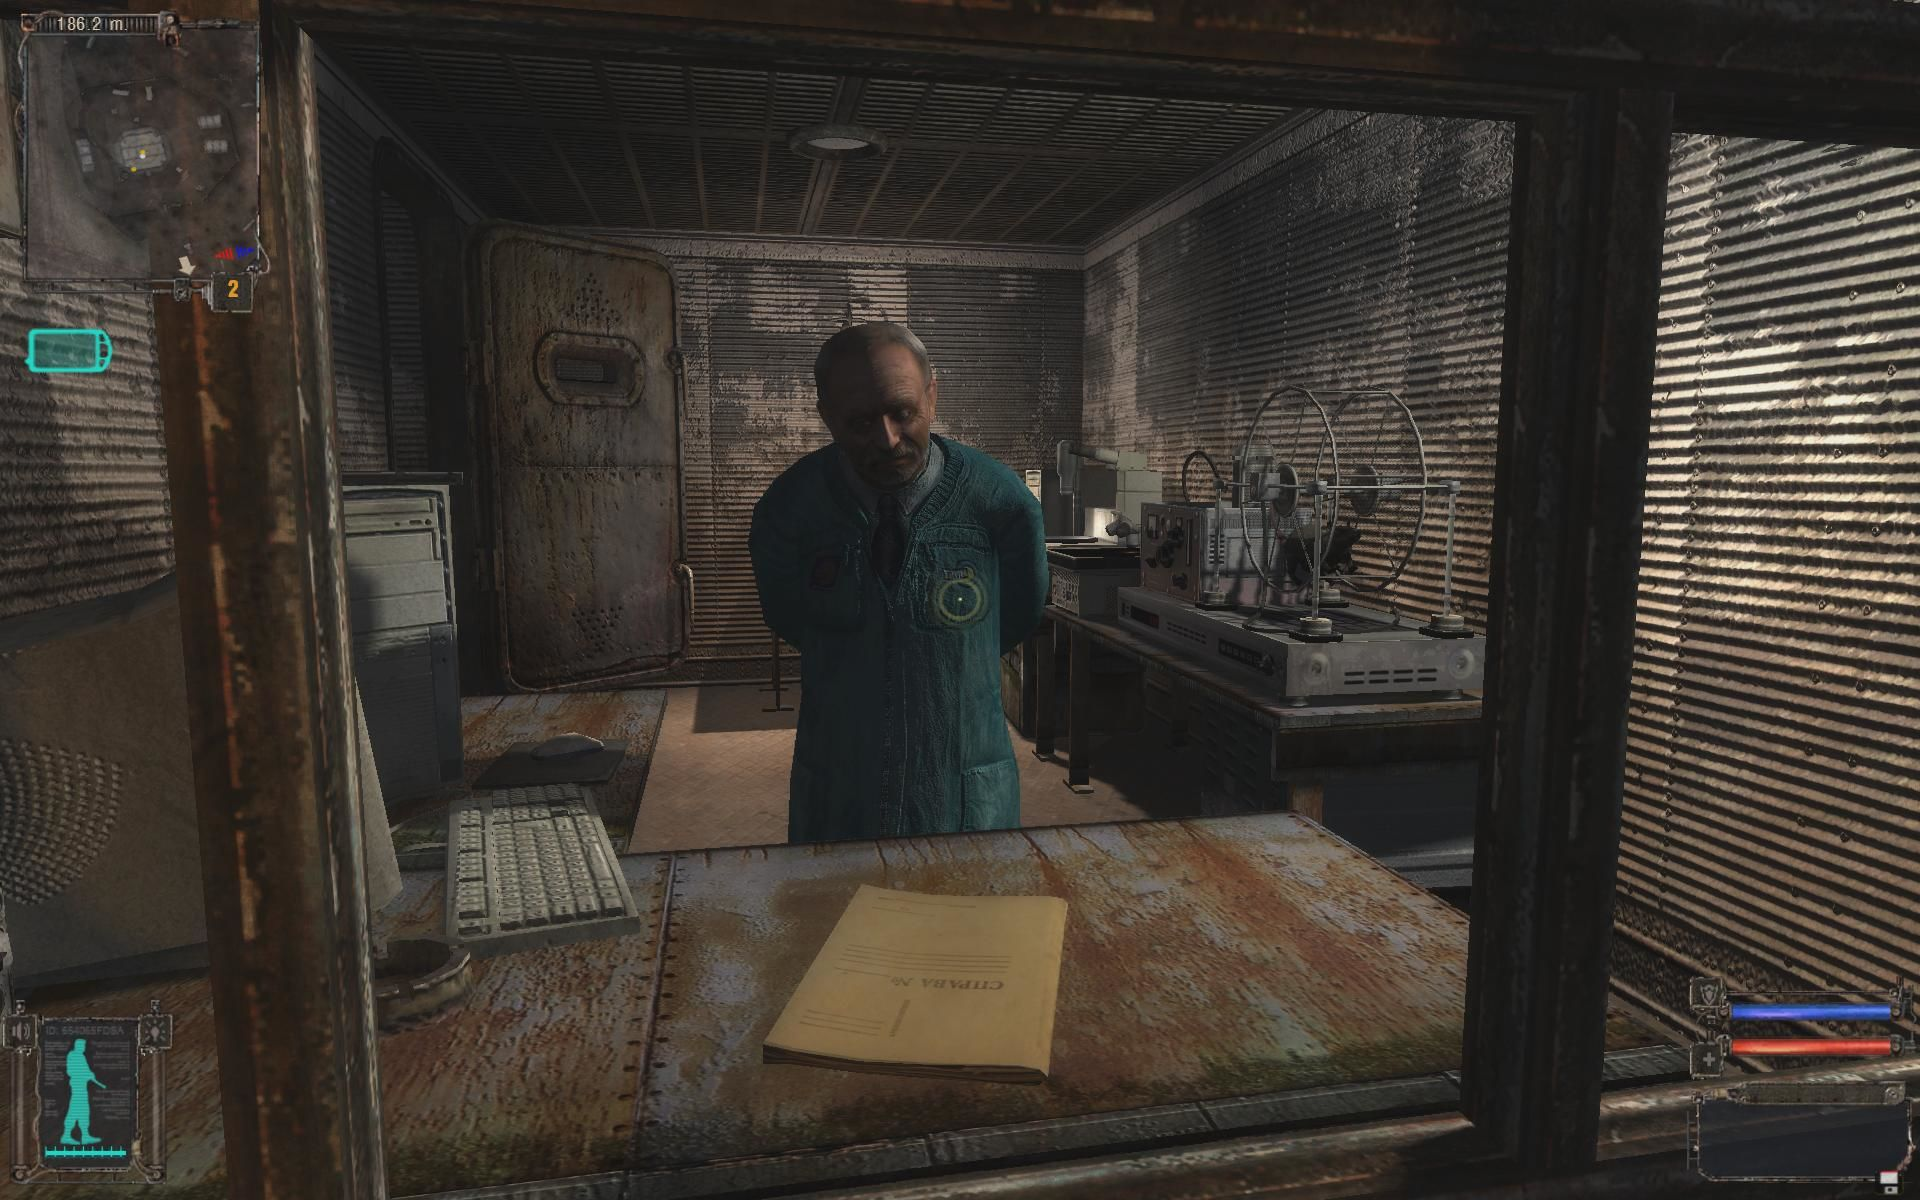 S.T.A.L.K.E.R.: Shadow of Chernobyl Windows The professor will give you some hard tasks but he's got some nice gadgets in exchange, plus he pays the most for artifacts.